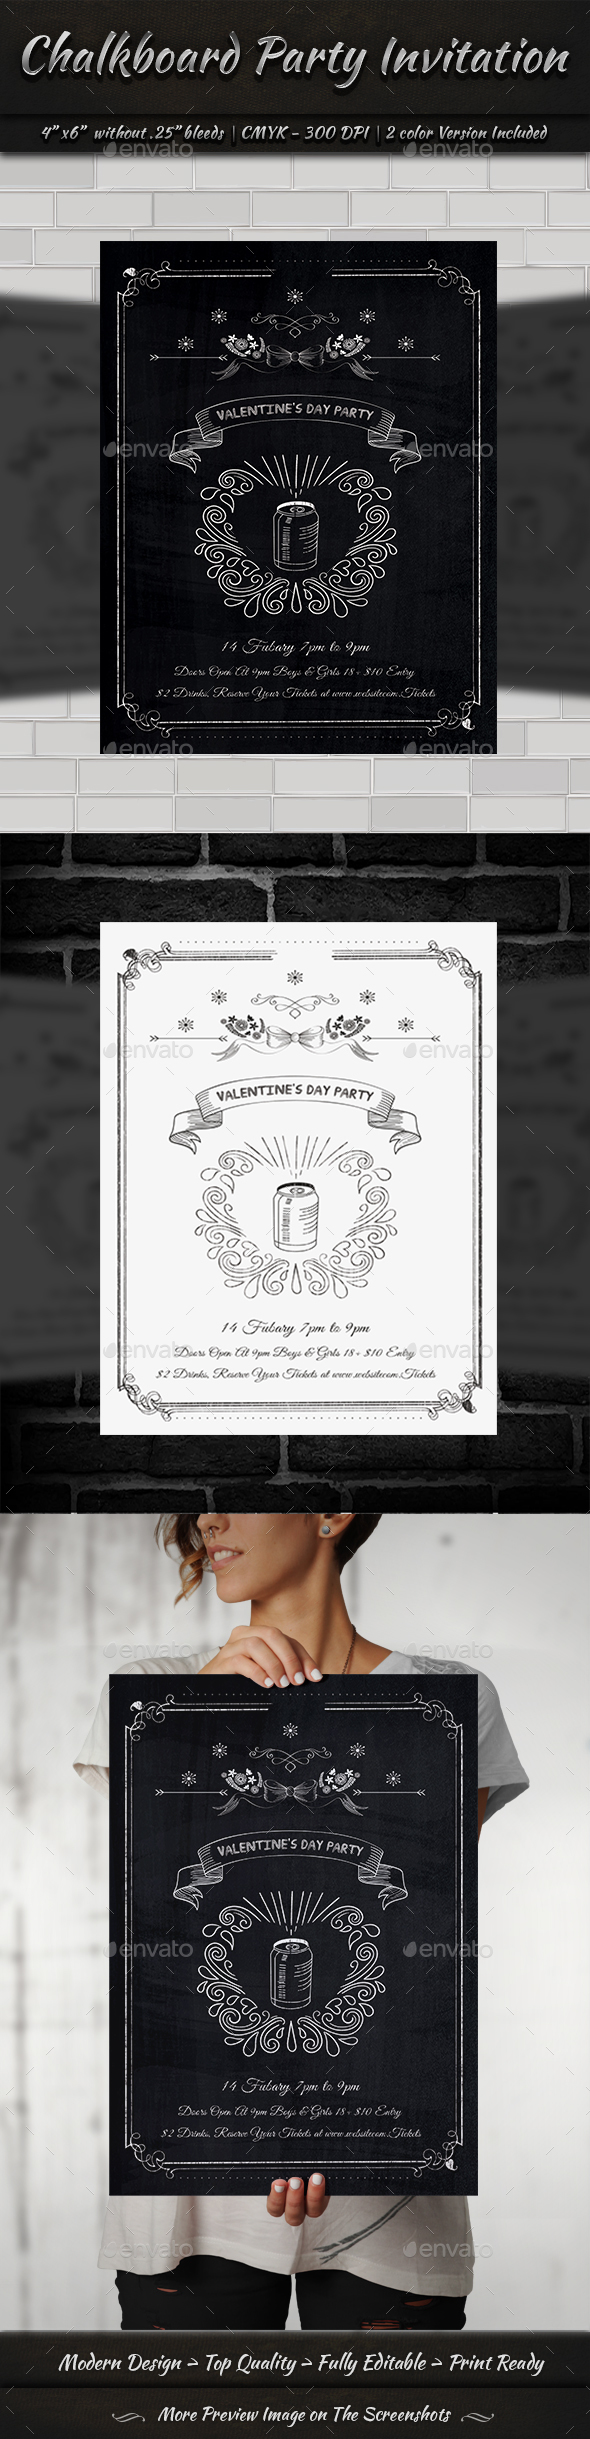 Chalkboard Party Invitation - Clubs & Parties Events